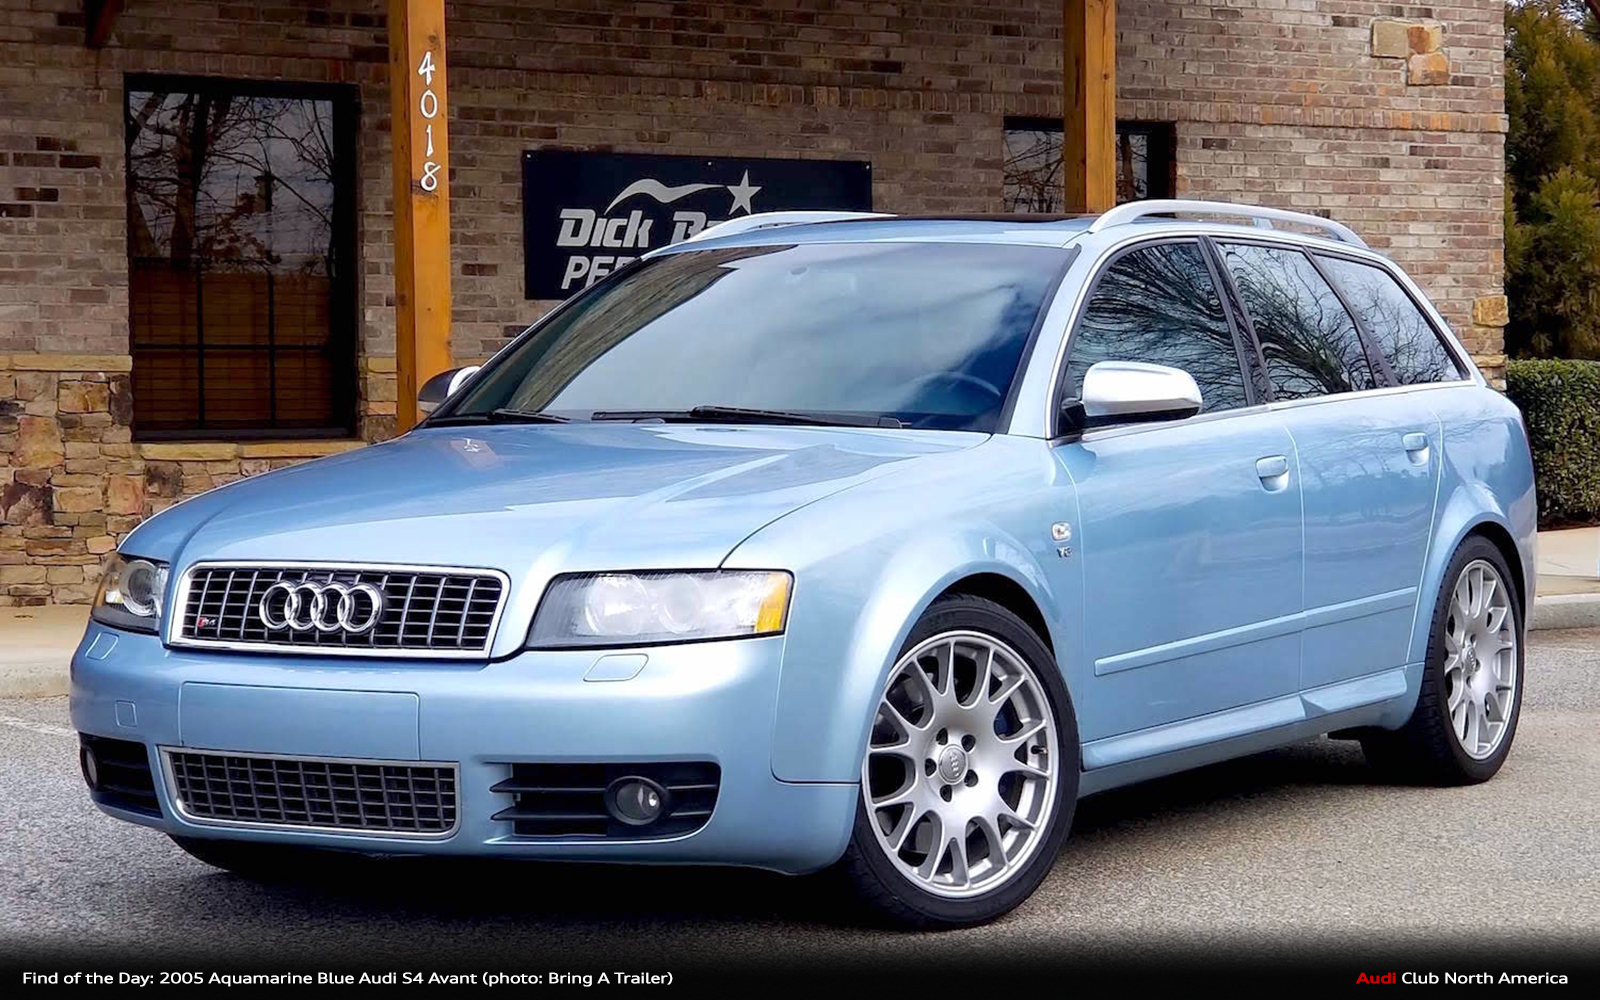 Find of the Day: 2005 Aquamarine Blue S4 Avant